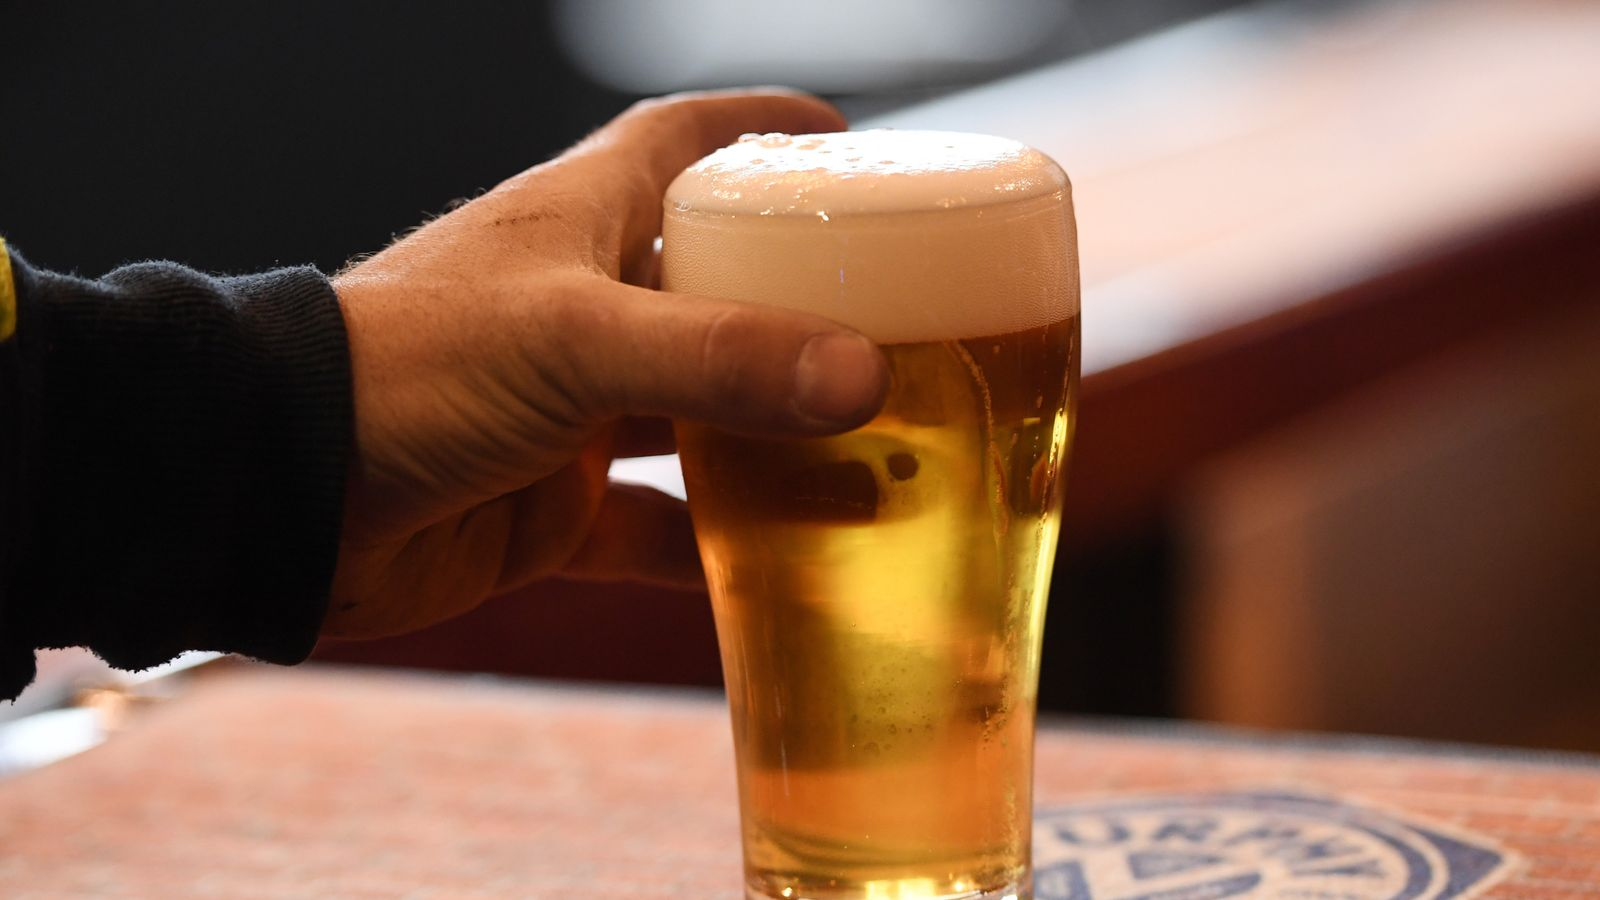 co2 shortage forces beer rationing and shuts down major abattoir